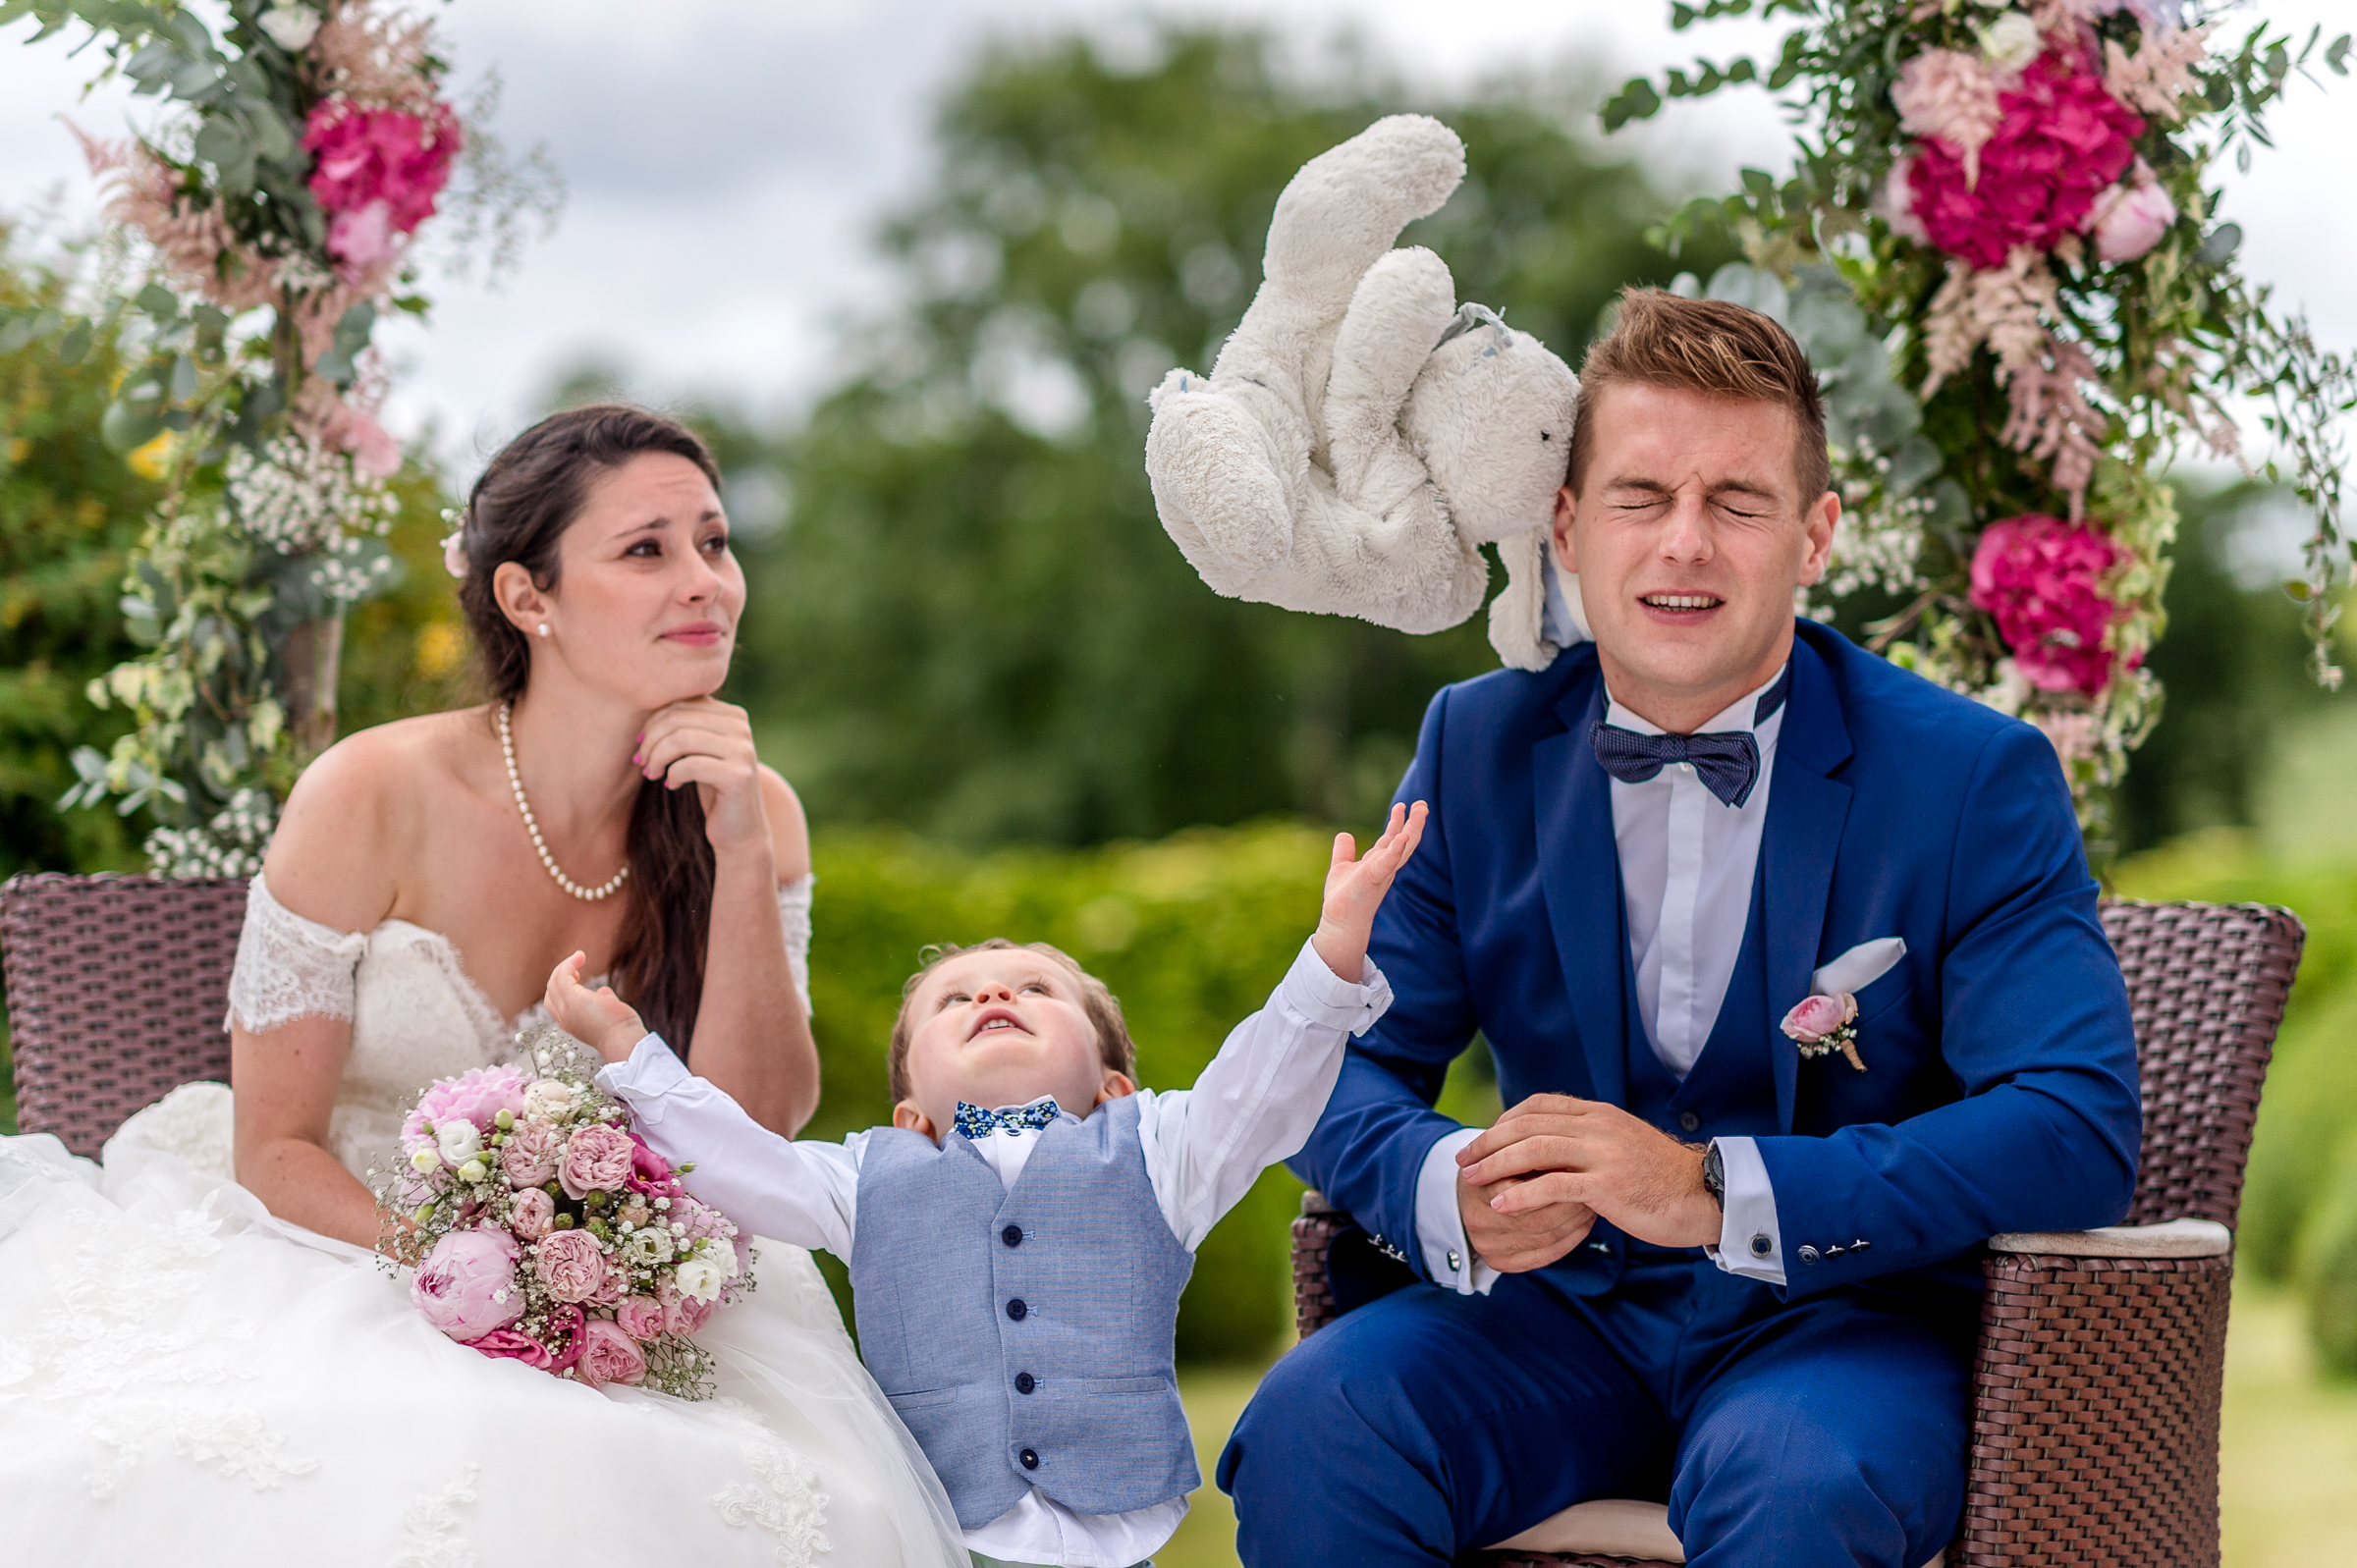 couple-with-little-boy-and-airborne-stuffed-bunny-gaelle-le-berre-photography